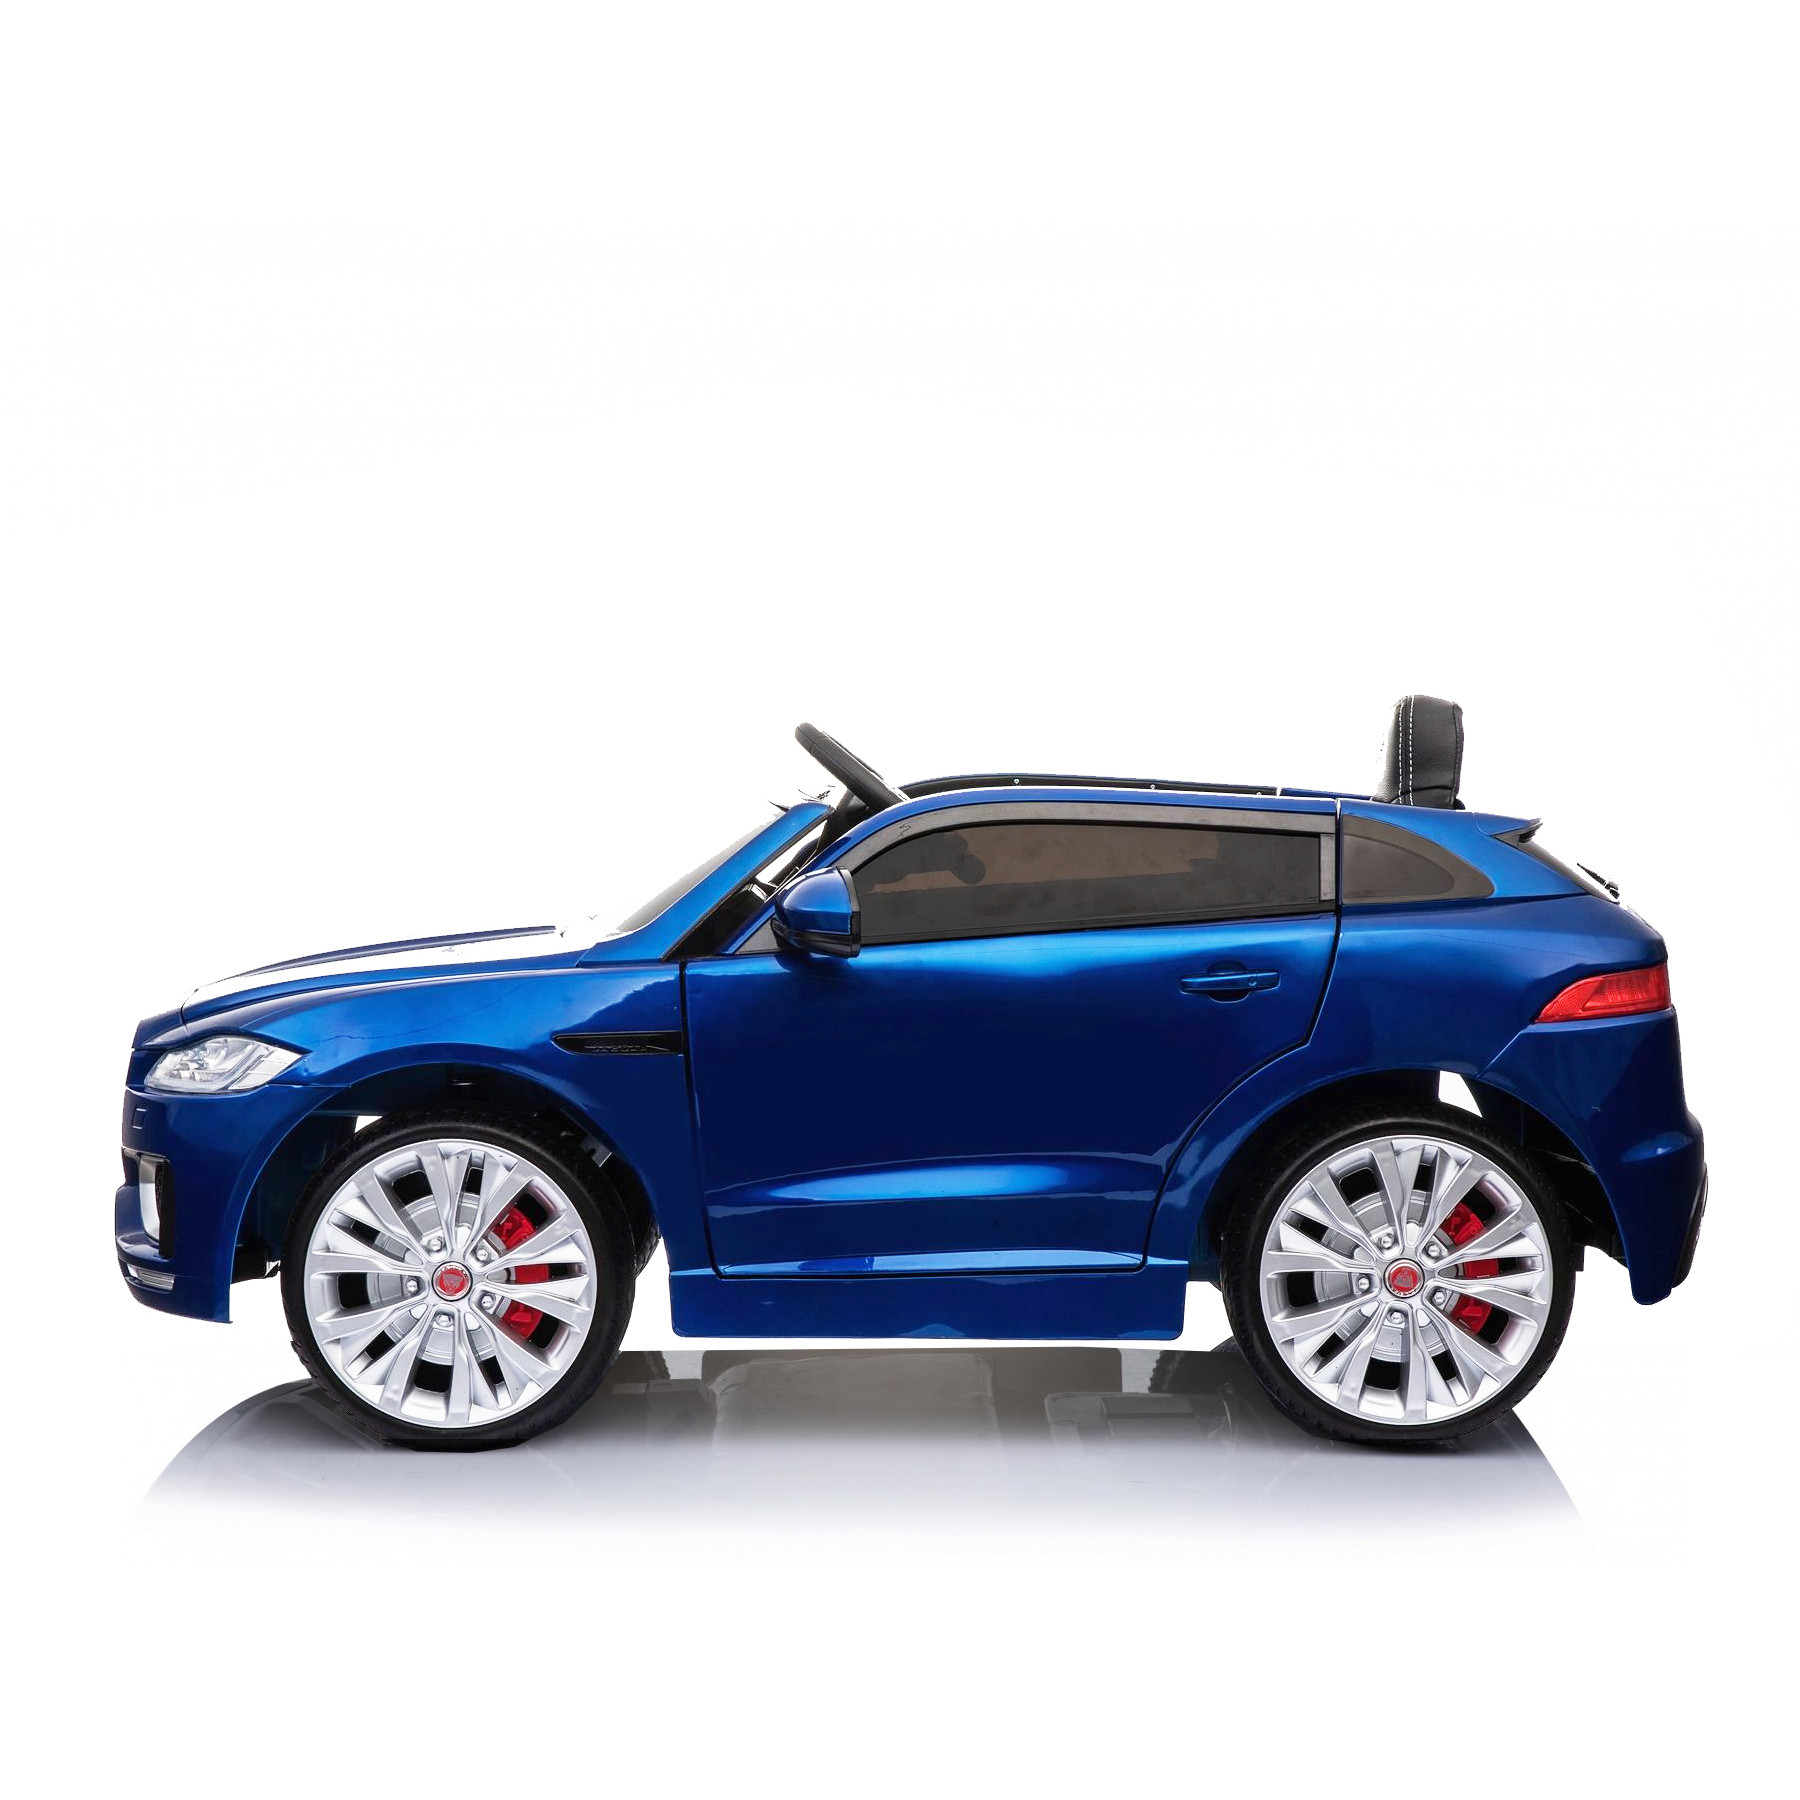 Xtreme 12v Official Licensed Jaguar F-PACE S Ride on Car Metallic Blue